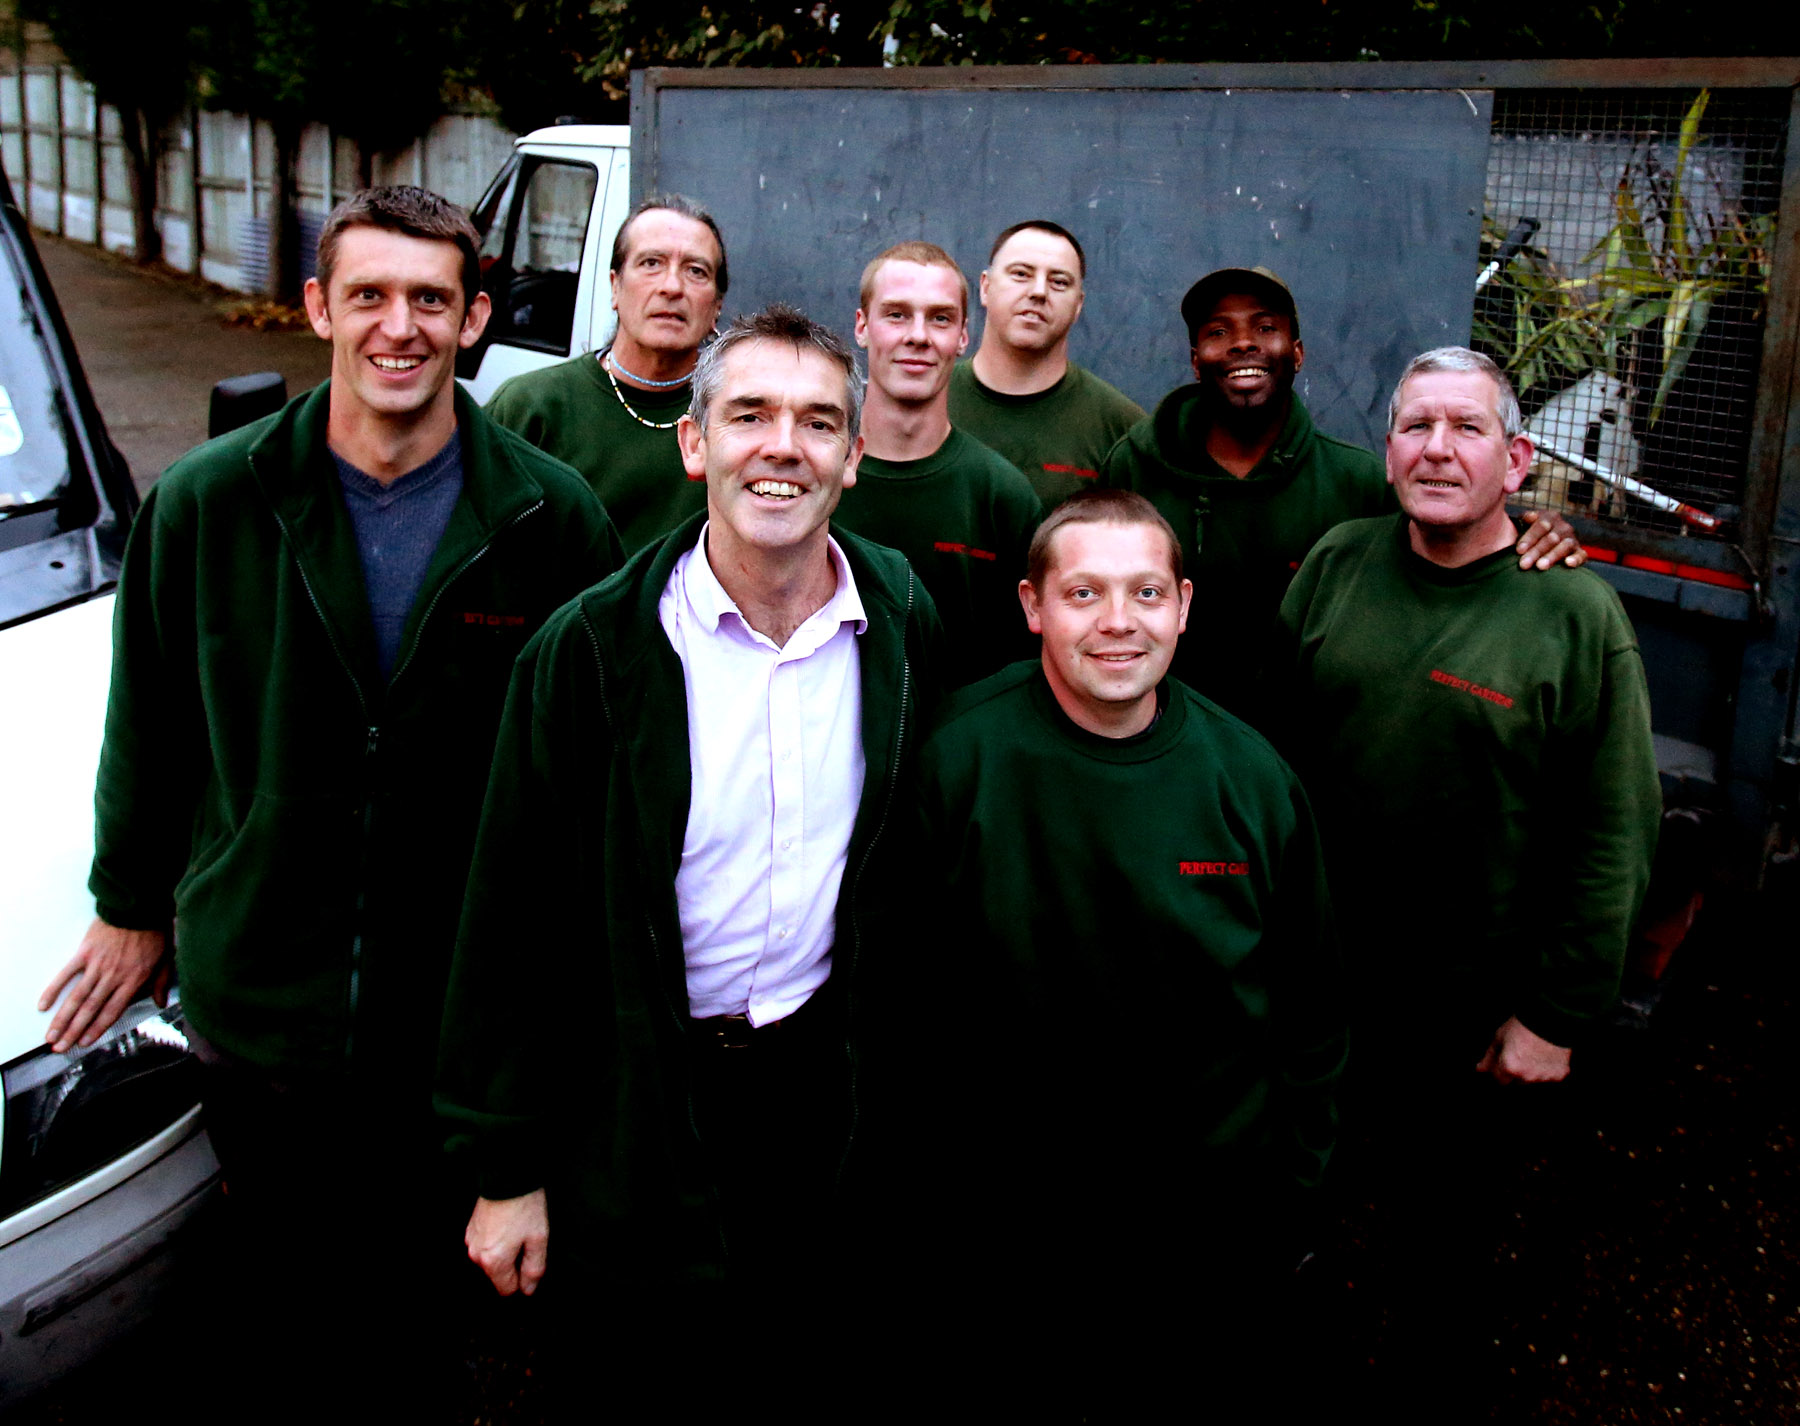 Perfect Gardens staff members Daniel Adams, Mark Wallace, Matt Yull, Matthew Trowder, Pete Jones, Dave Flack, Courteney Williams and Albert Rudgeley.